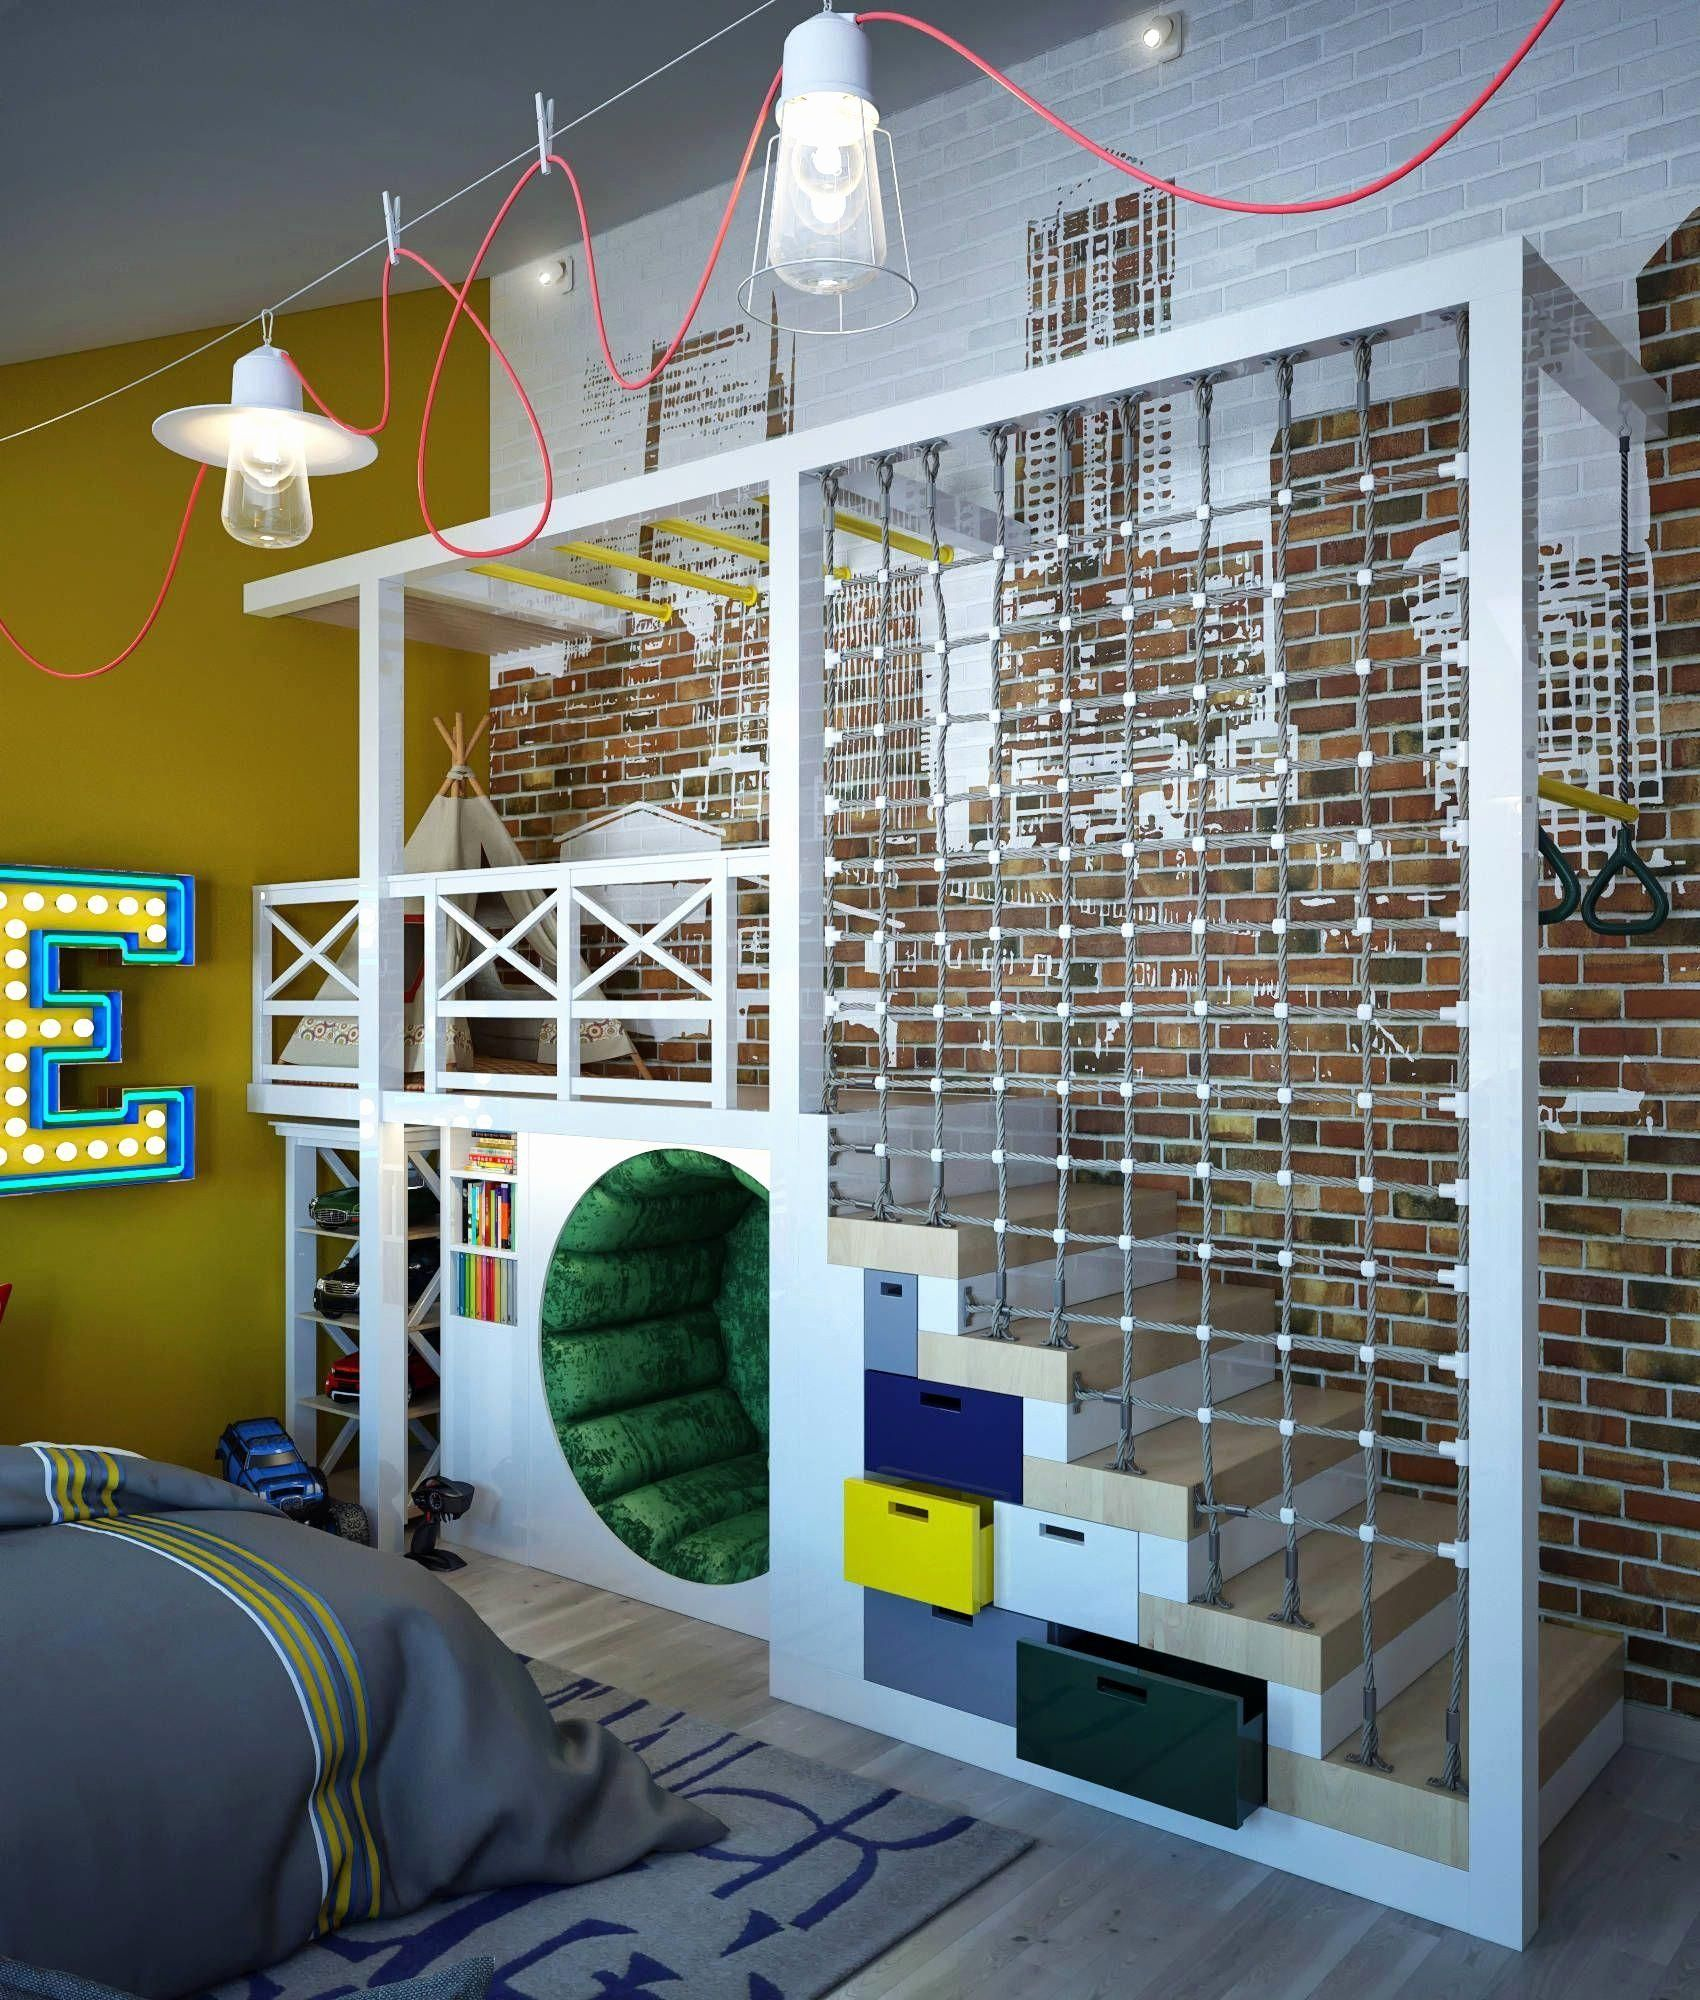 5 Year Old Bedroom Ideas Inspirational 20 Boy Bedroom Ideas 4 Year Old Boy Bedroom Ideas 7 Year Old Boysbe In 2020 Unique Kid Rooms Kids Bedroom Decor Gym Room At Home